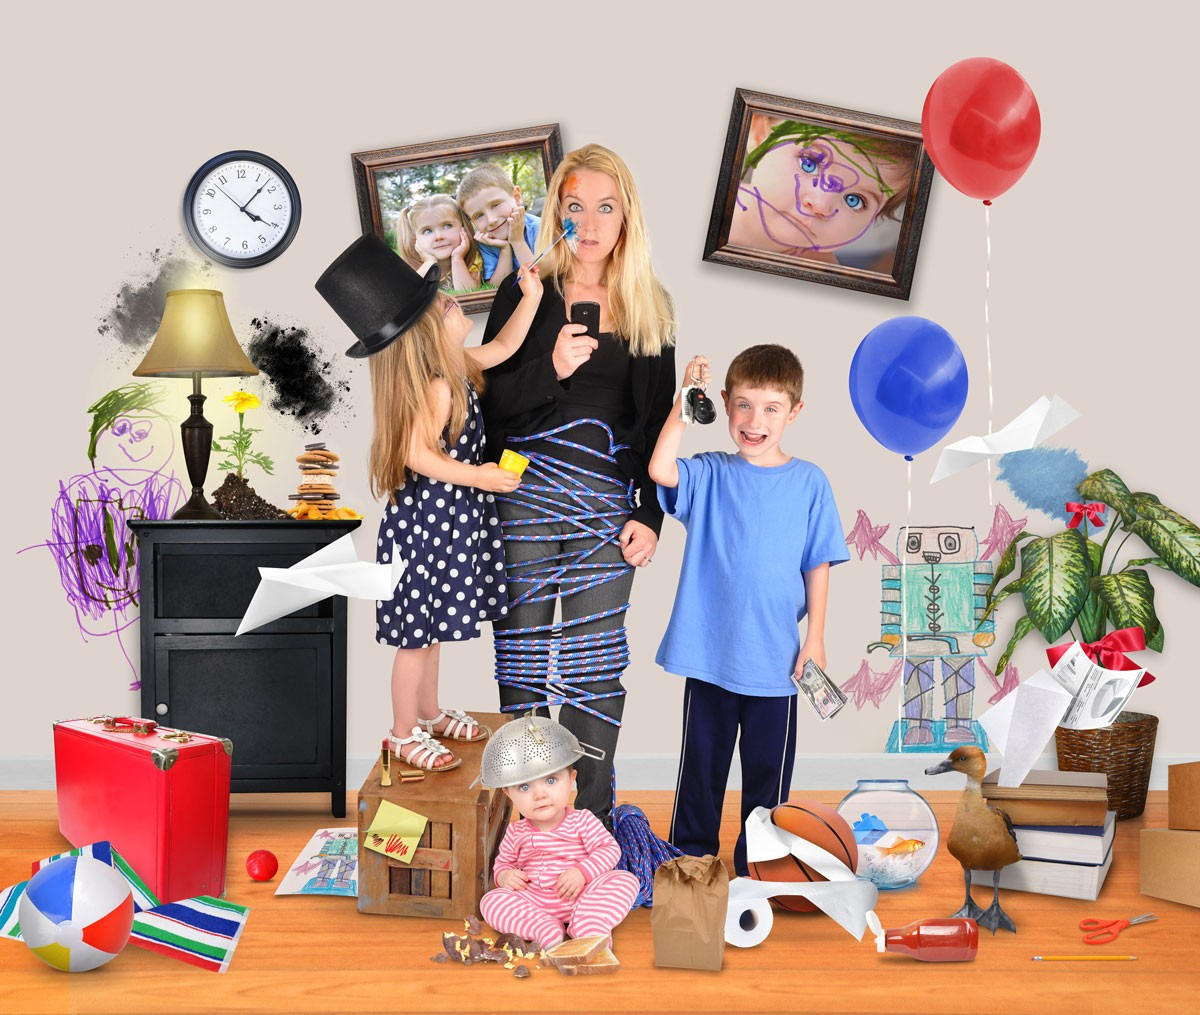 Coping Without Child Care During the Holidays